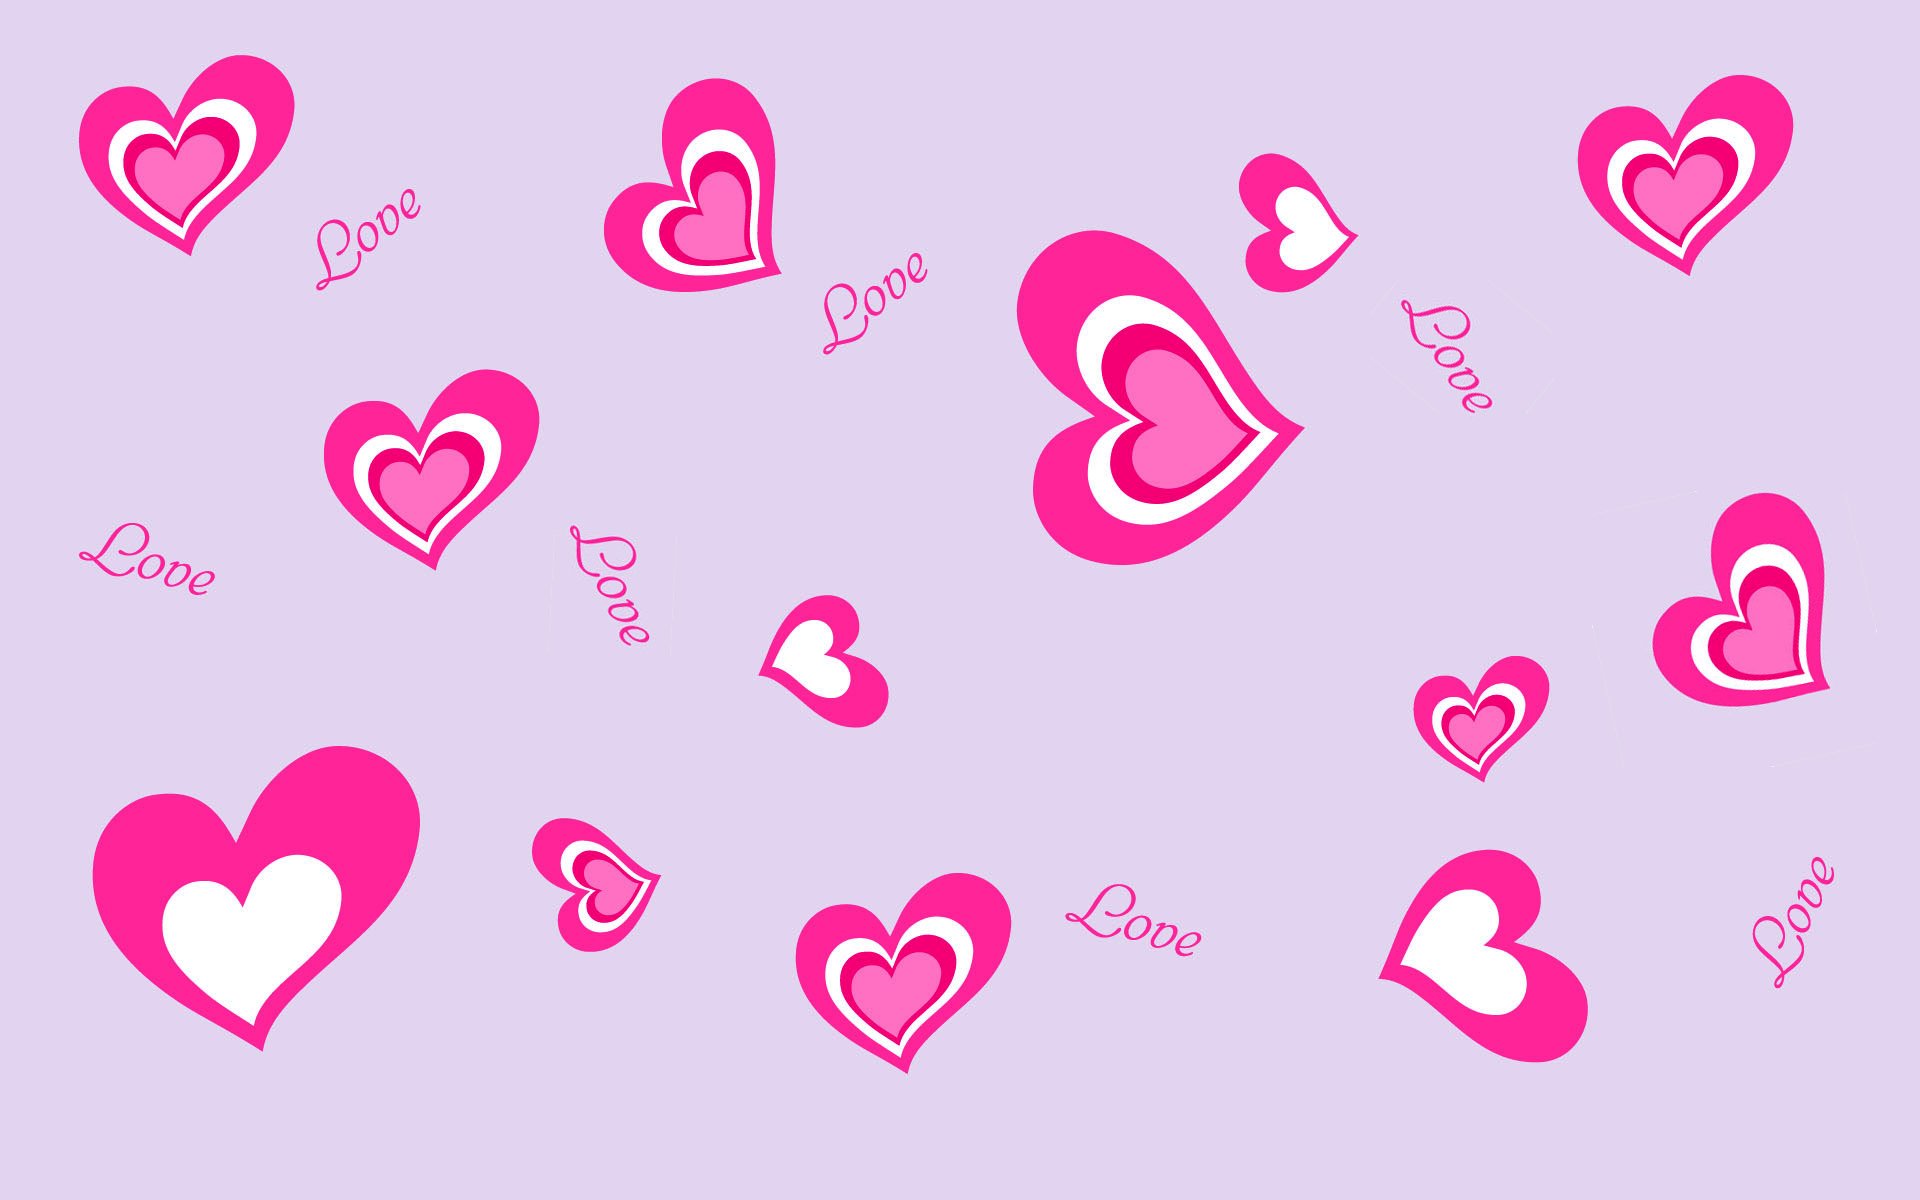 Wallpaper download girly - Girly Lovely Hearts Cool Twitter Backgrounds